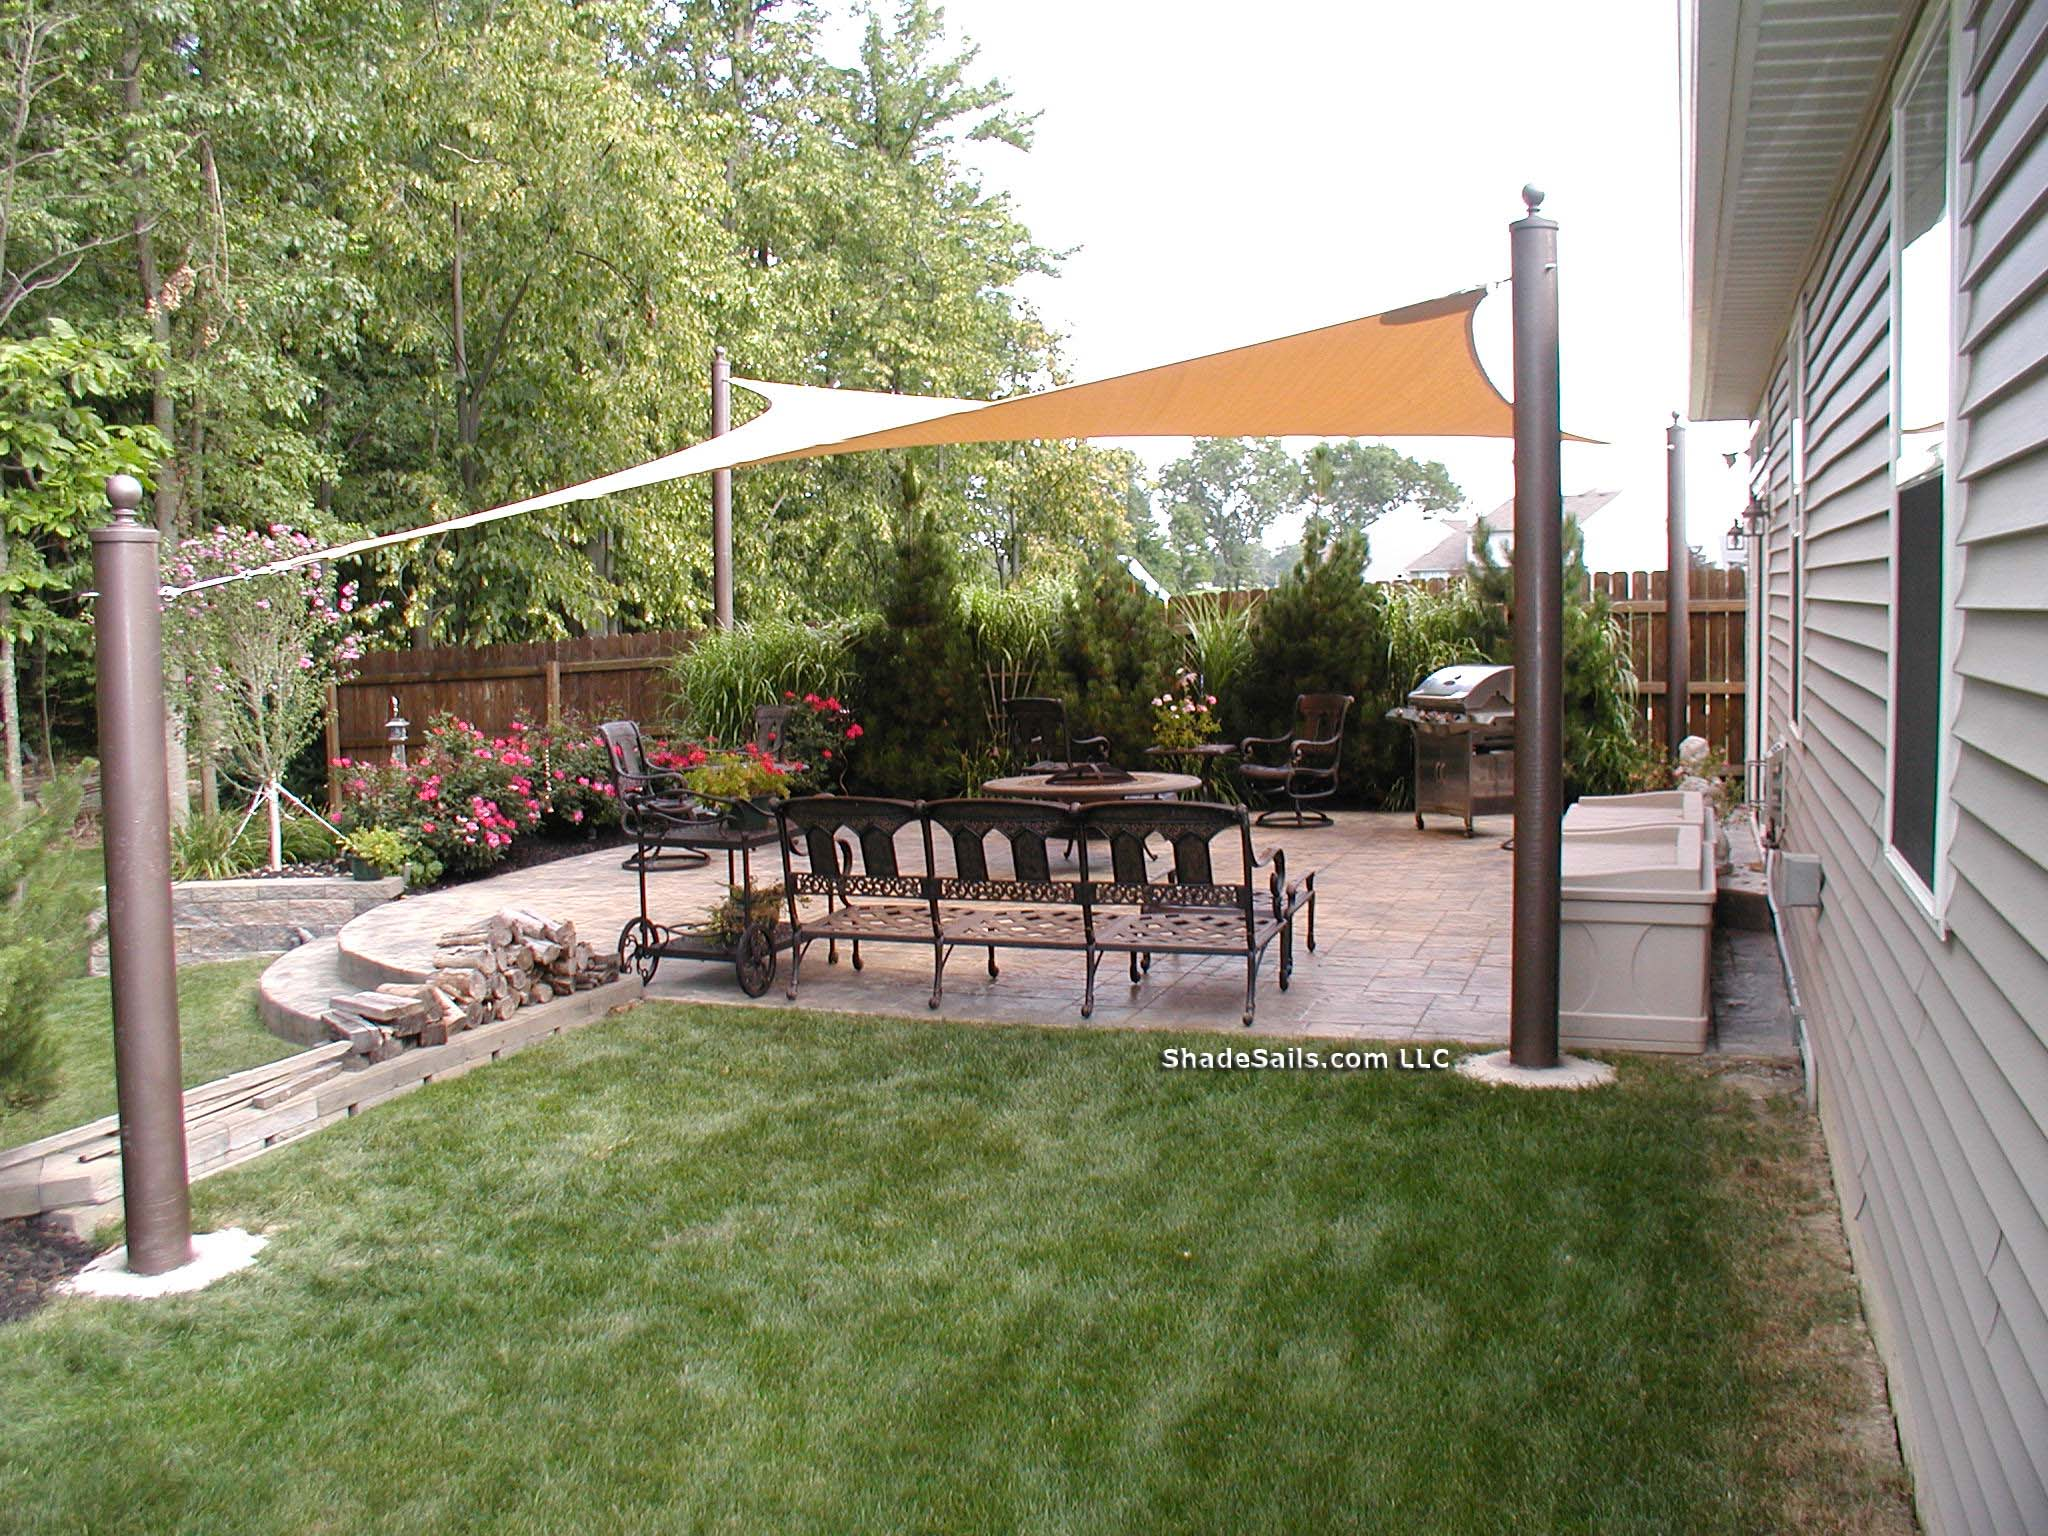 Misc Residential - Shade Sails LLC